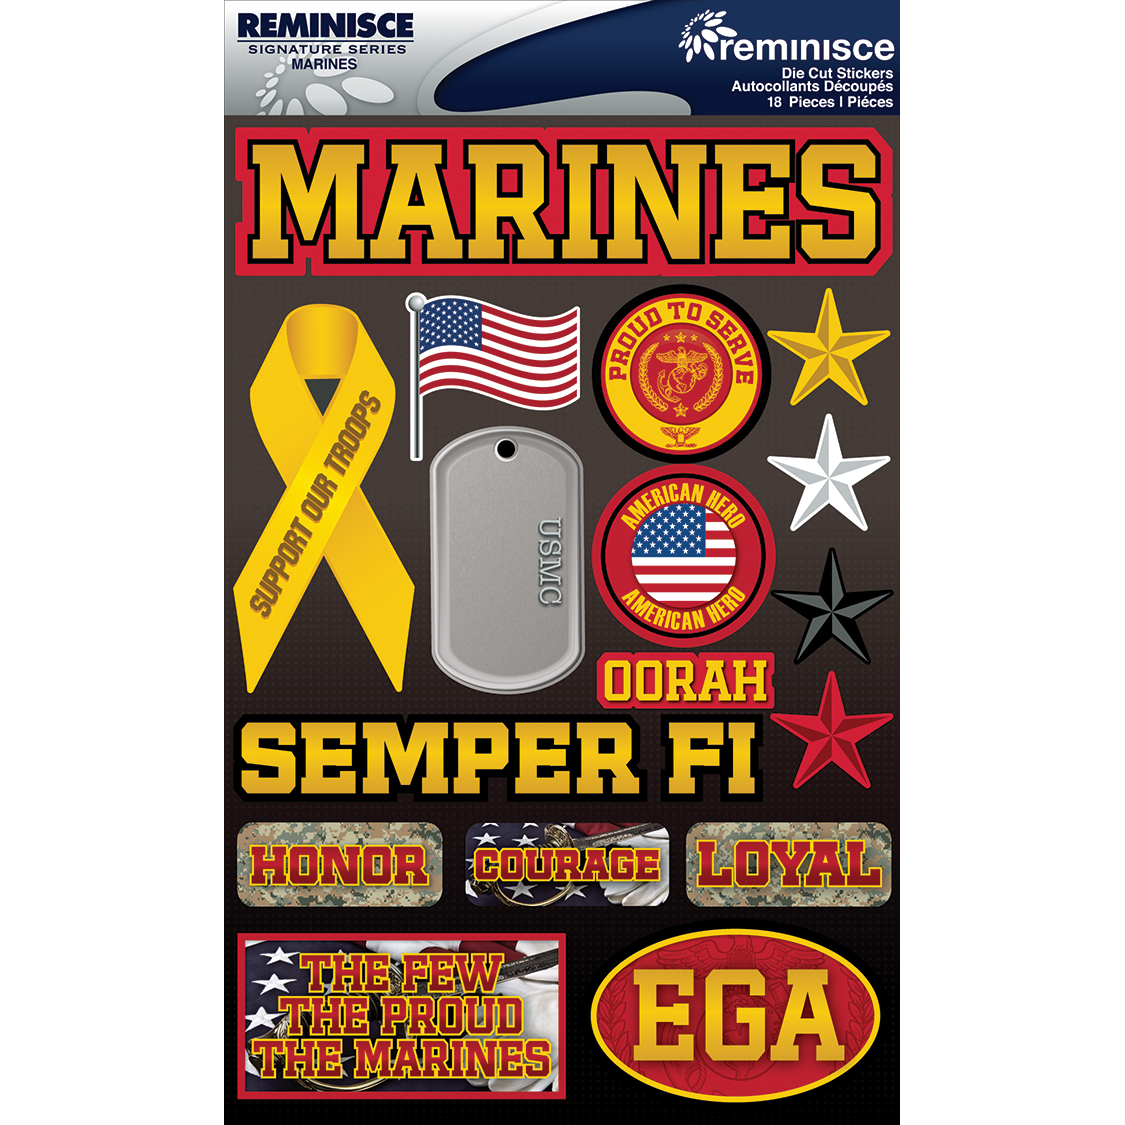 MARINES   -SIGNATURE 3D STICKER